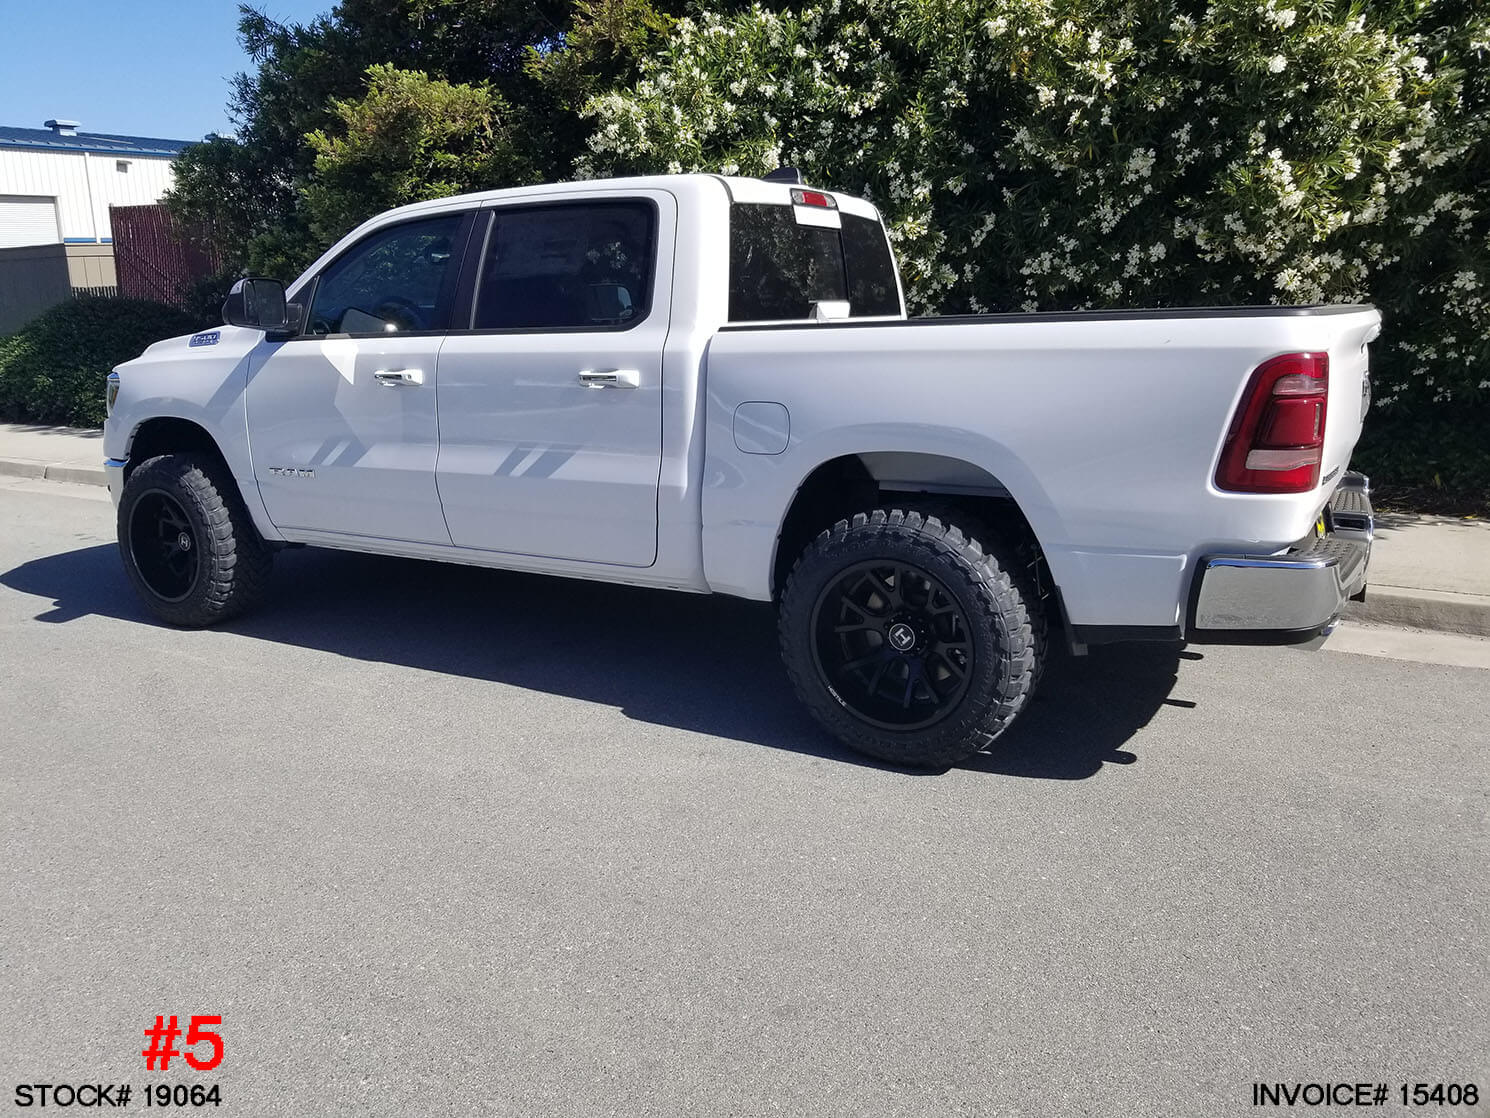 Lifted Ram 3500 >> 2019 DODGE RAM 1500 CREW CAB #19064 | Truck and SUV Parts Warehouse